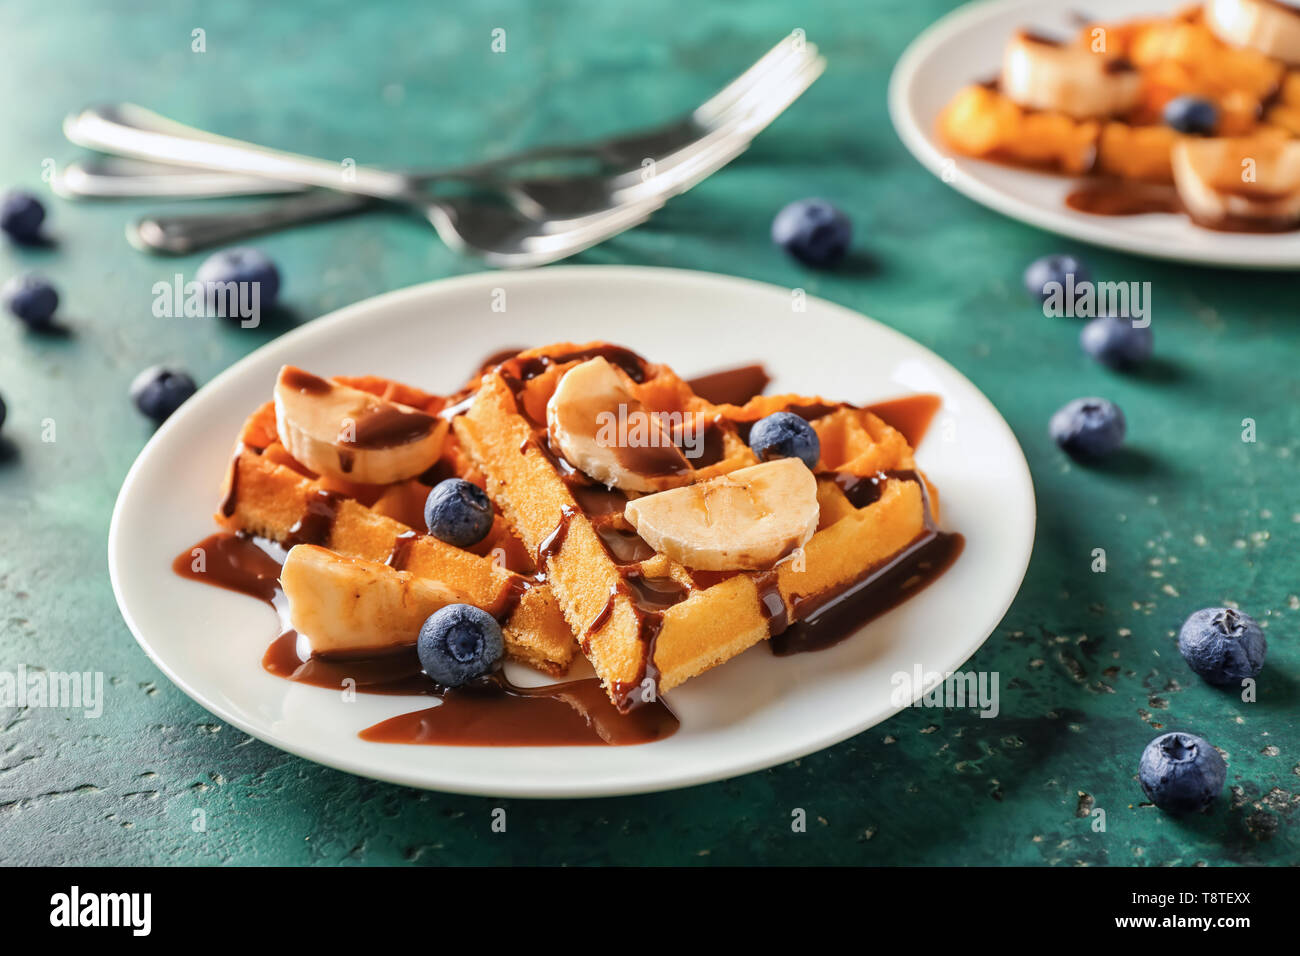 Heart shaped waffles with banana slices, blueberries and chocolate sauce on plate - Stock Image